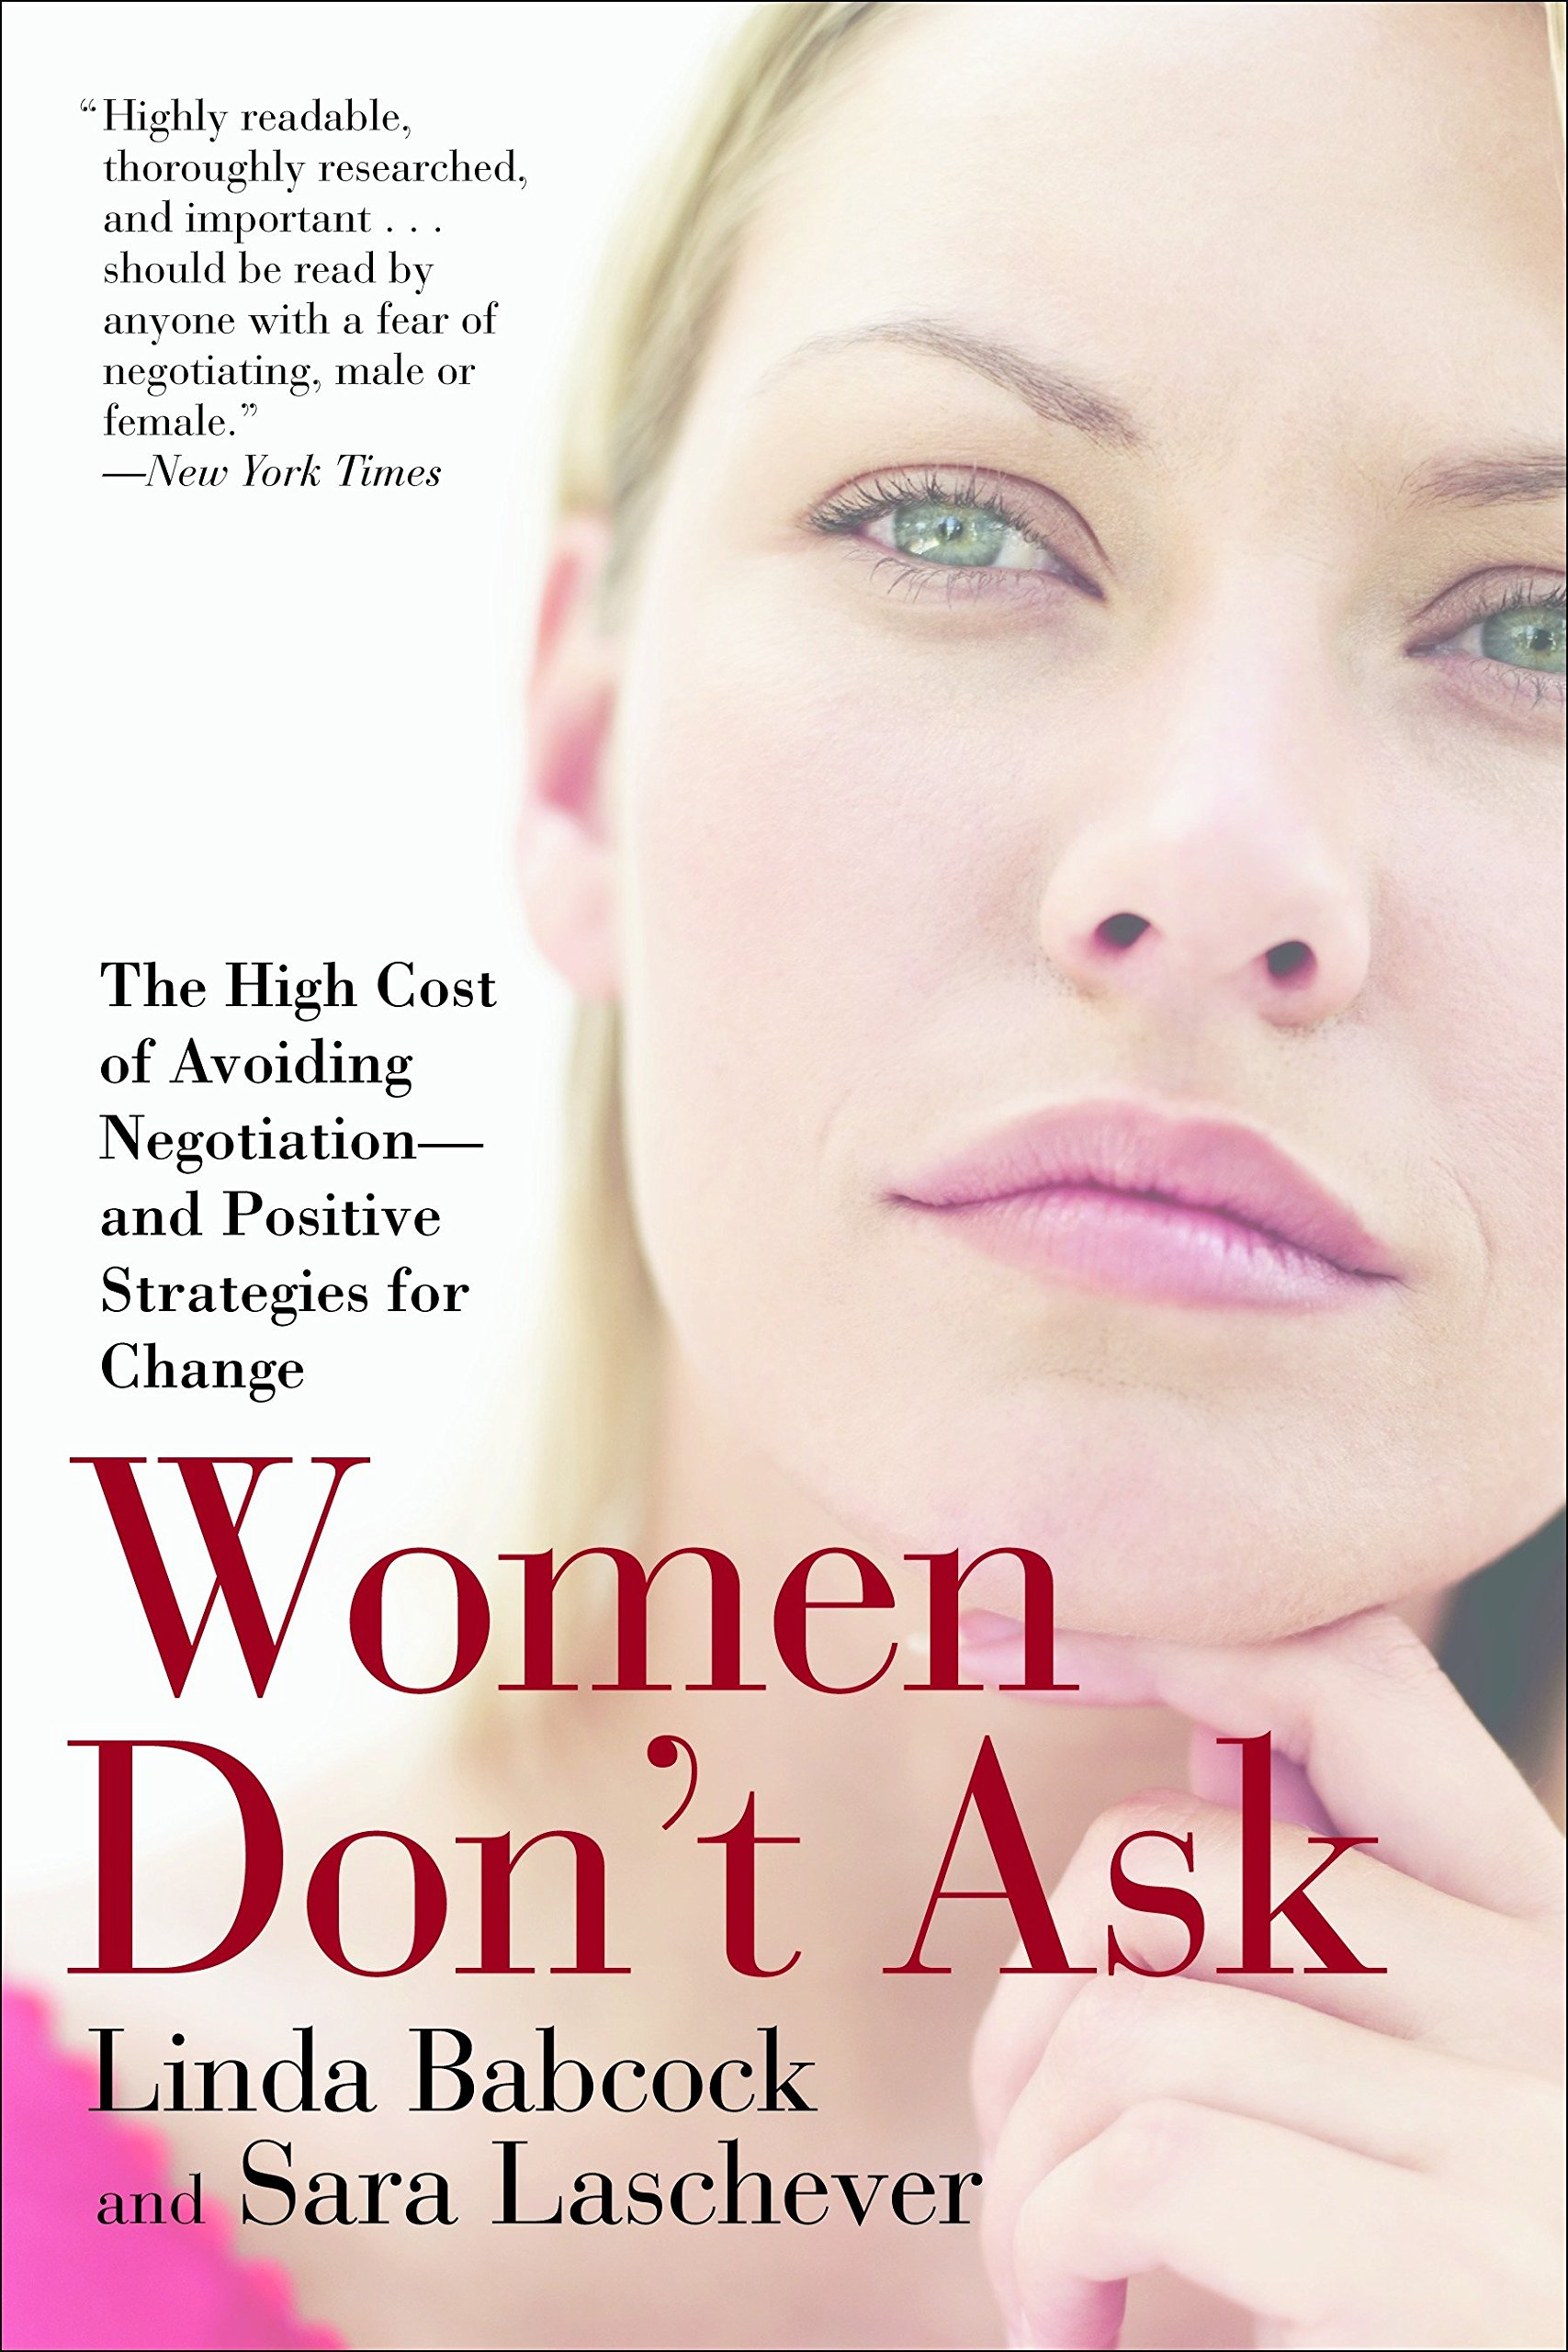 Women Don't Ask: The High Cost of Avoiding Negotiation–and Positive Strategies for Change